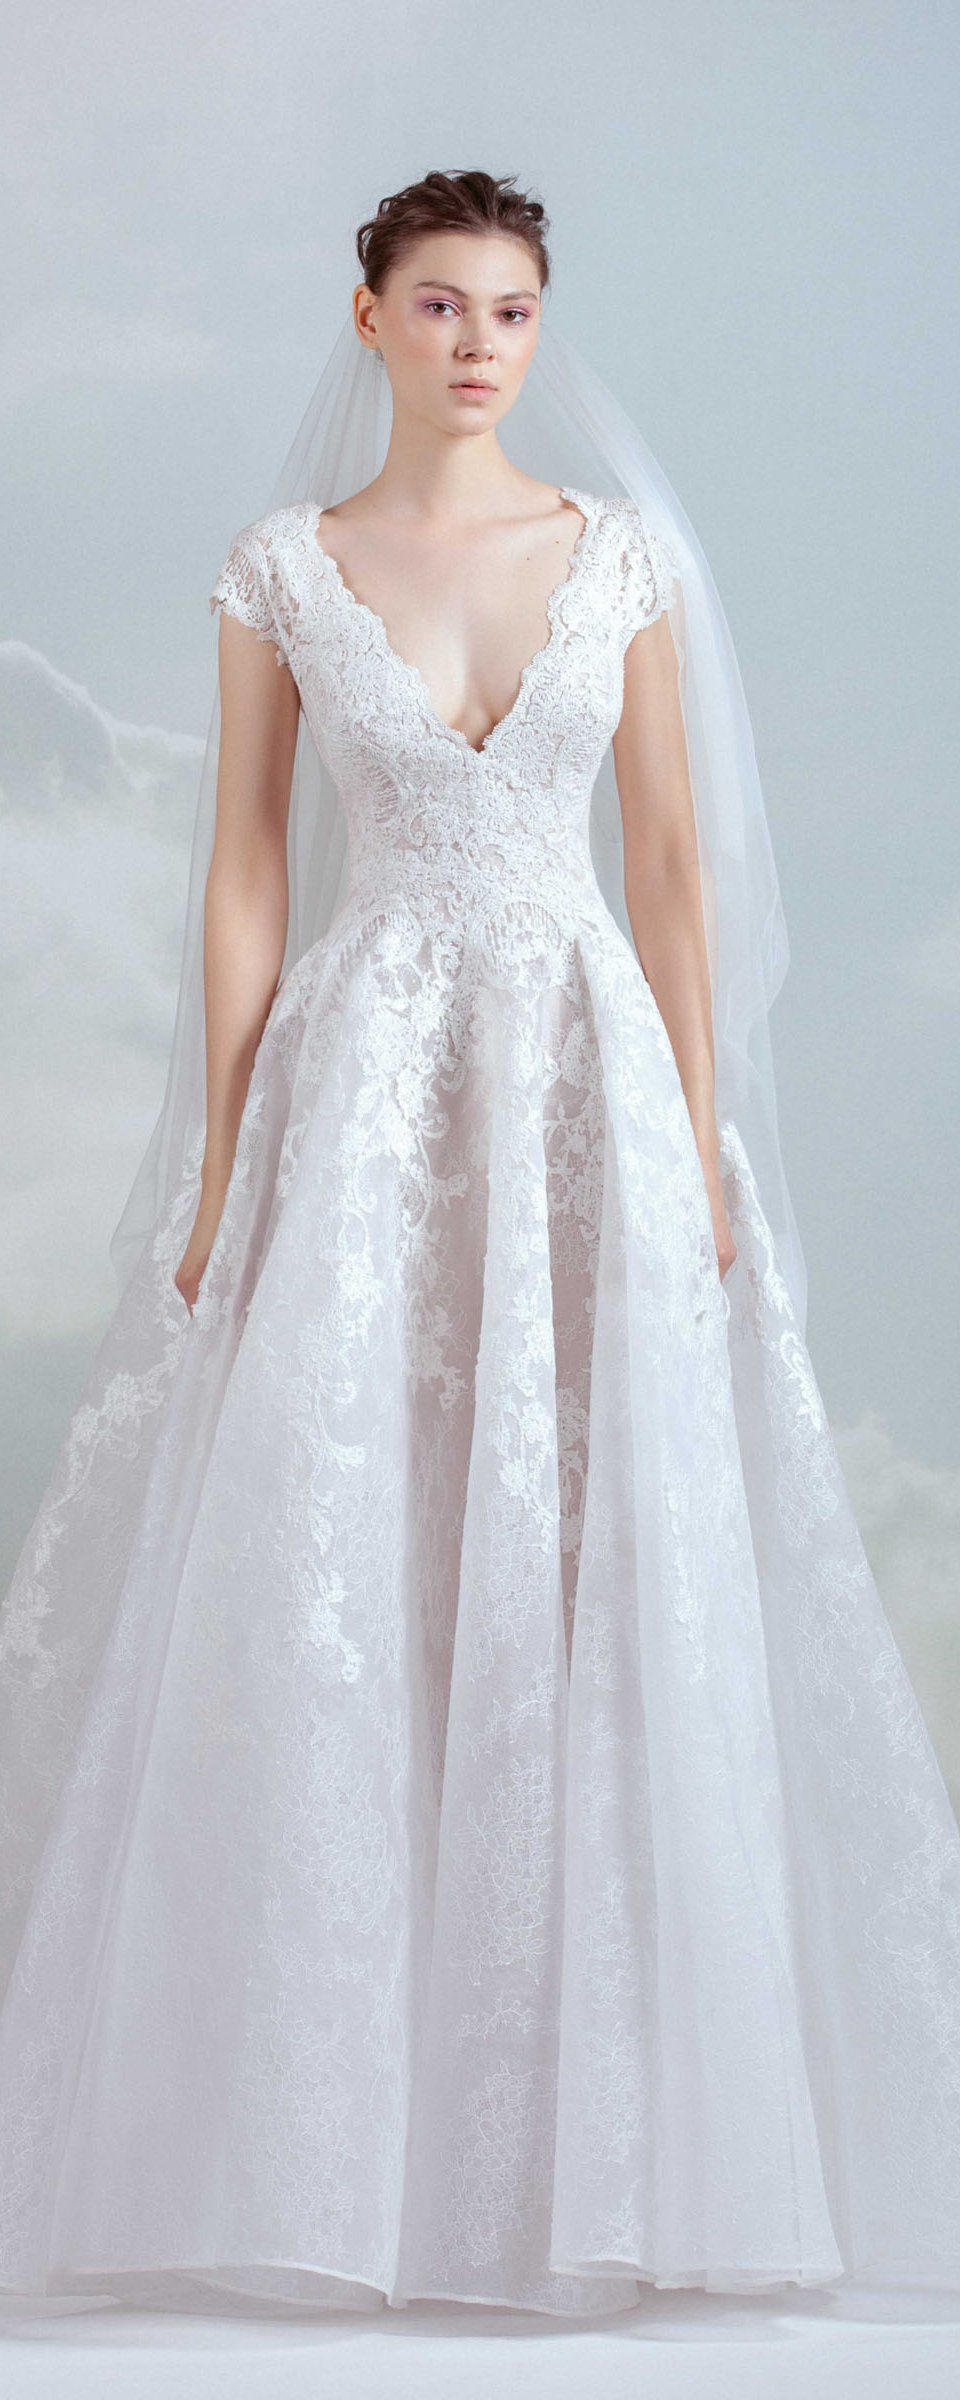 Lace wedding dress for short person january 2019 Gemy Maalouf  collection  Bridal  Wedding dress and Weddings